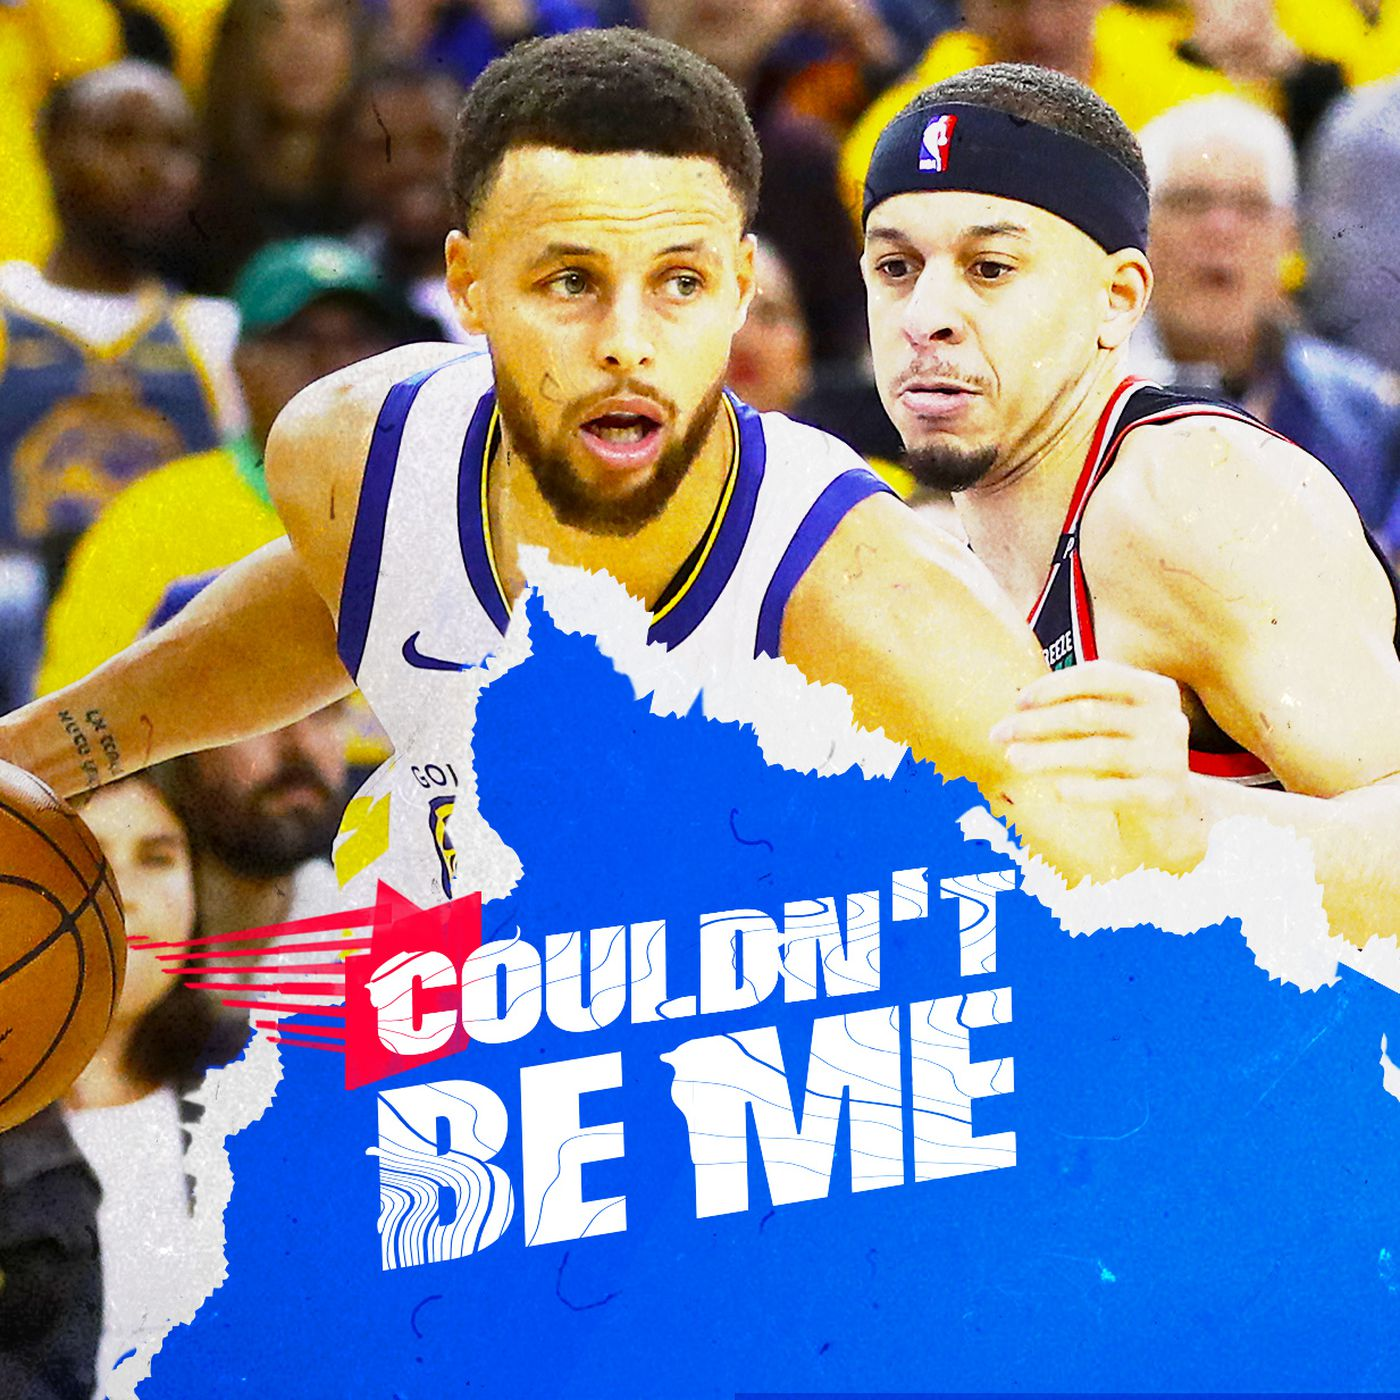 f5af54790 Couldn't Be Me: Help, my brother is Steph Curry